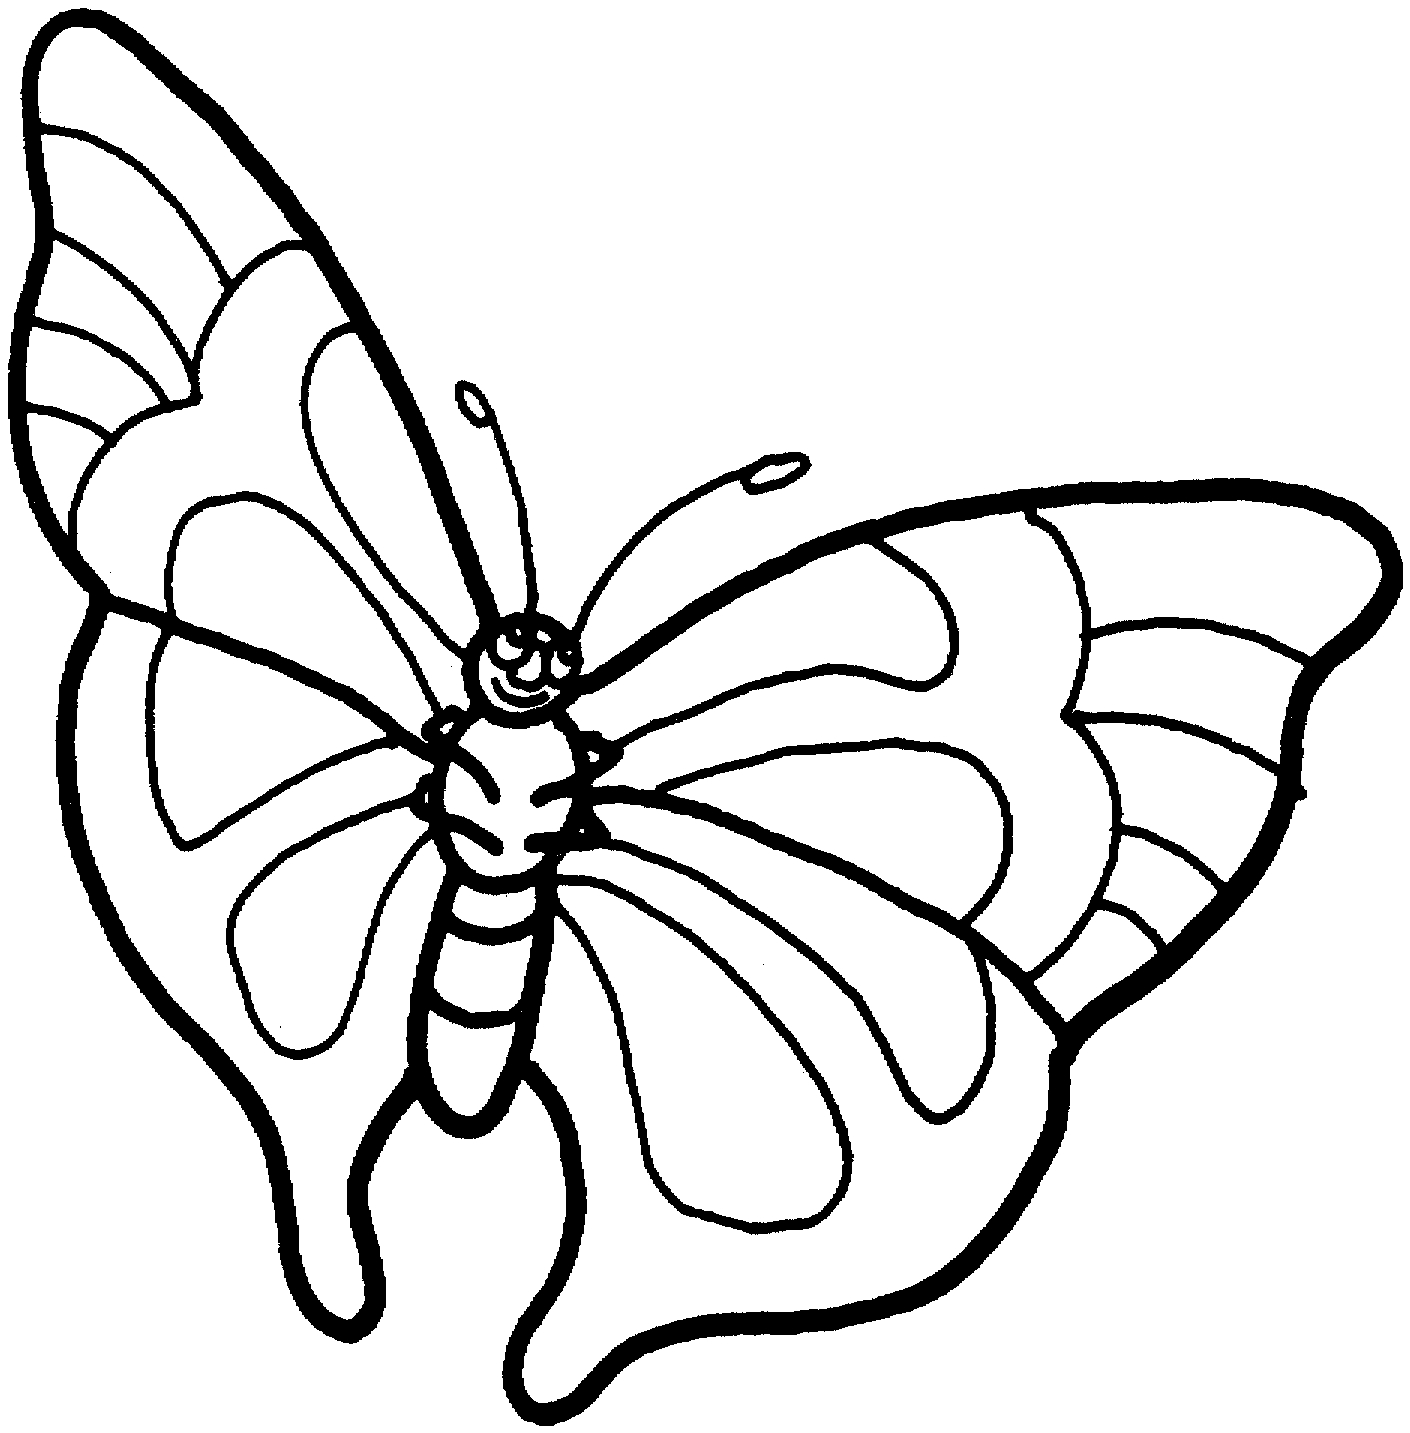 1410x1433 Unique Cartoon Butterfly Coloring Pages Design Printable